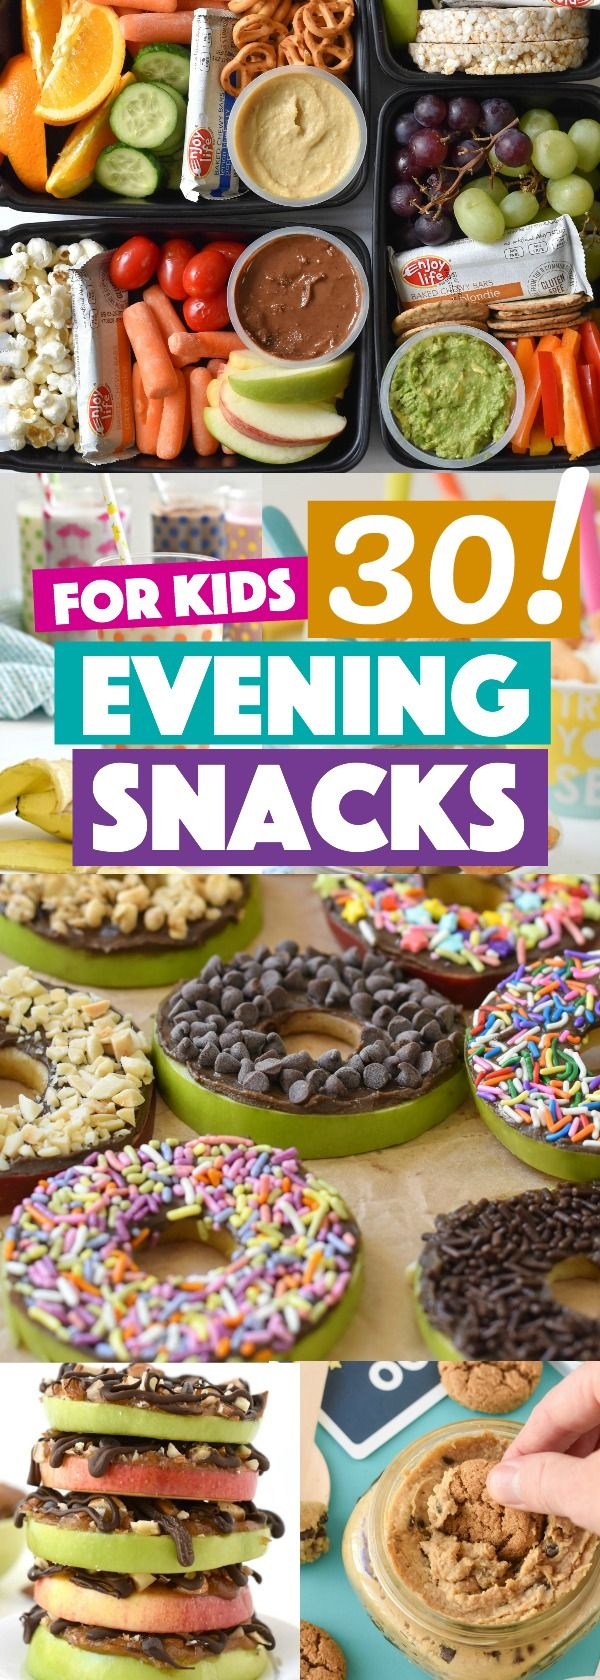 A collection of recipes for evening snacks for kids #kidfood #kidsnacks #healthysnacksforkids